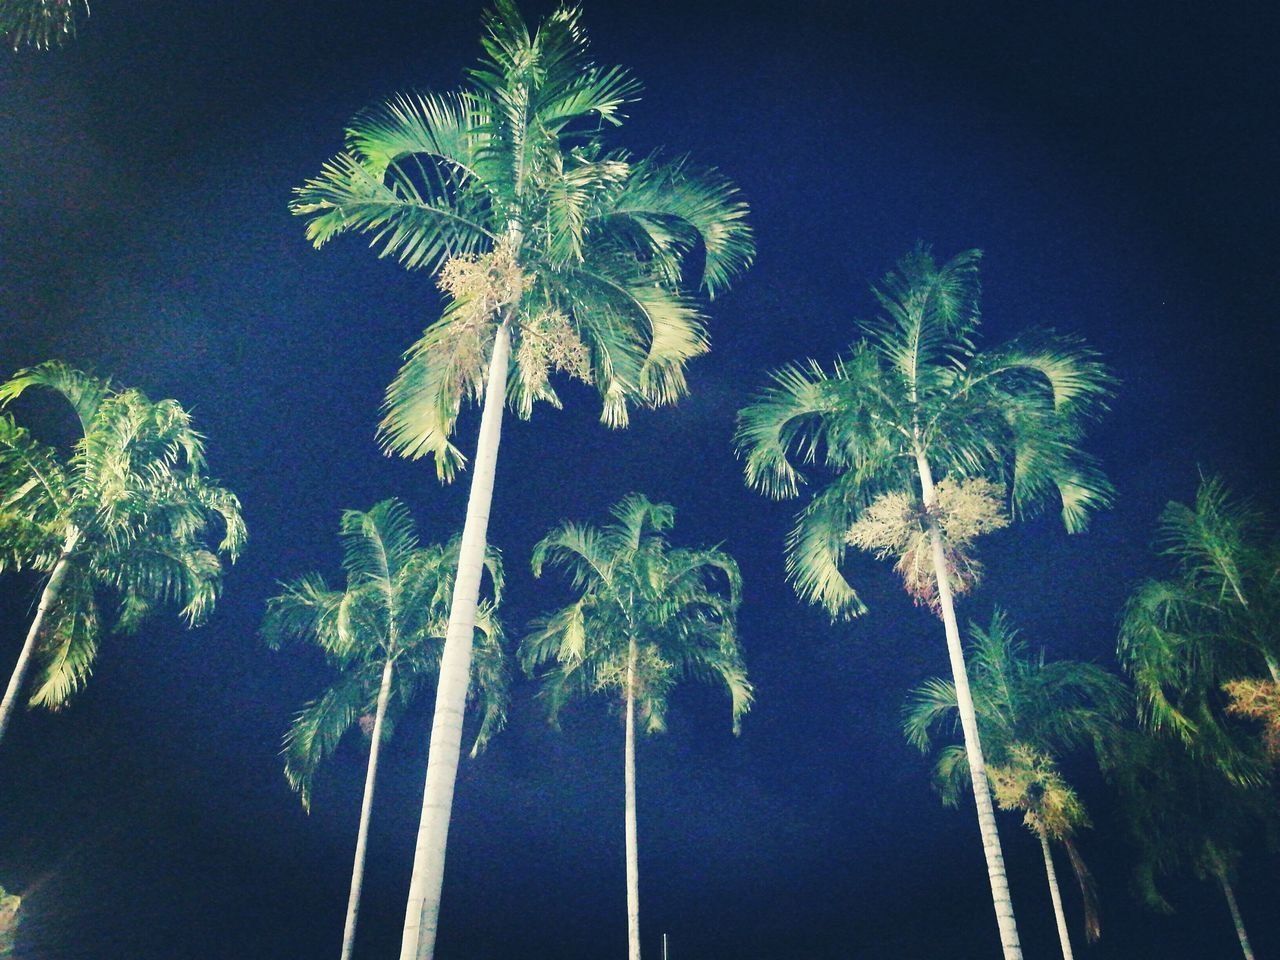 Low Angle View Growth Night Sky Outdoors Blue Palm Tree Plant Nature Tree No People Illuminated Clear Sky Beauty In Nature Close-up Tropical Beauty